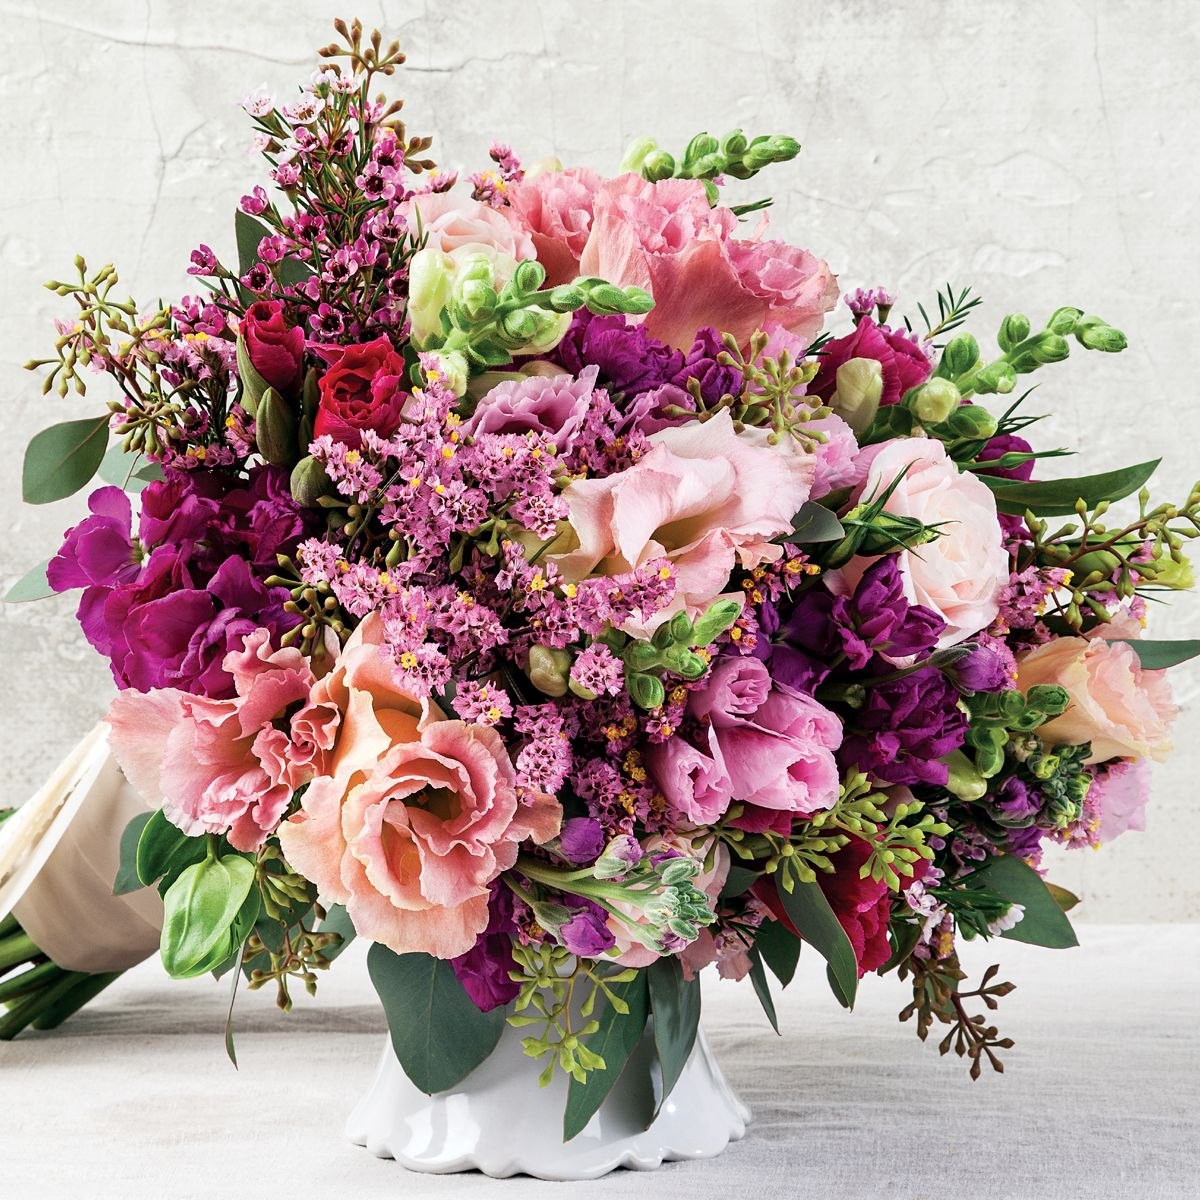 In Full Bloom | Bridal bouquets, Weddings and Flowers